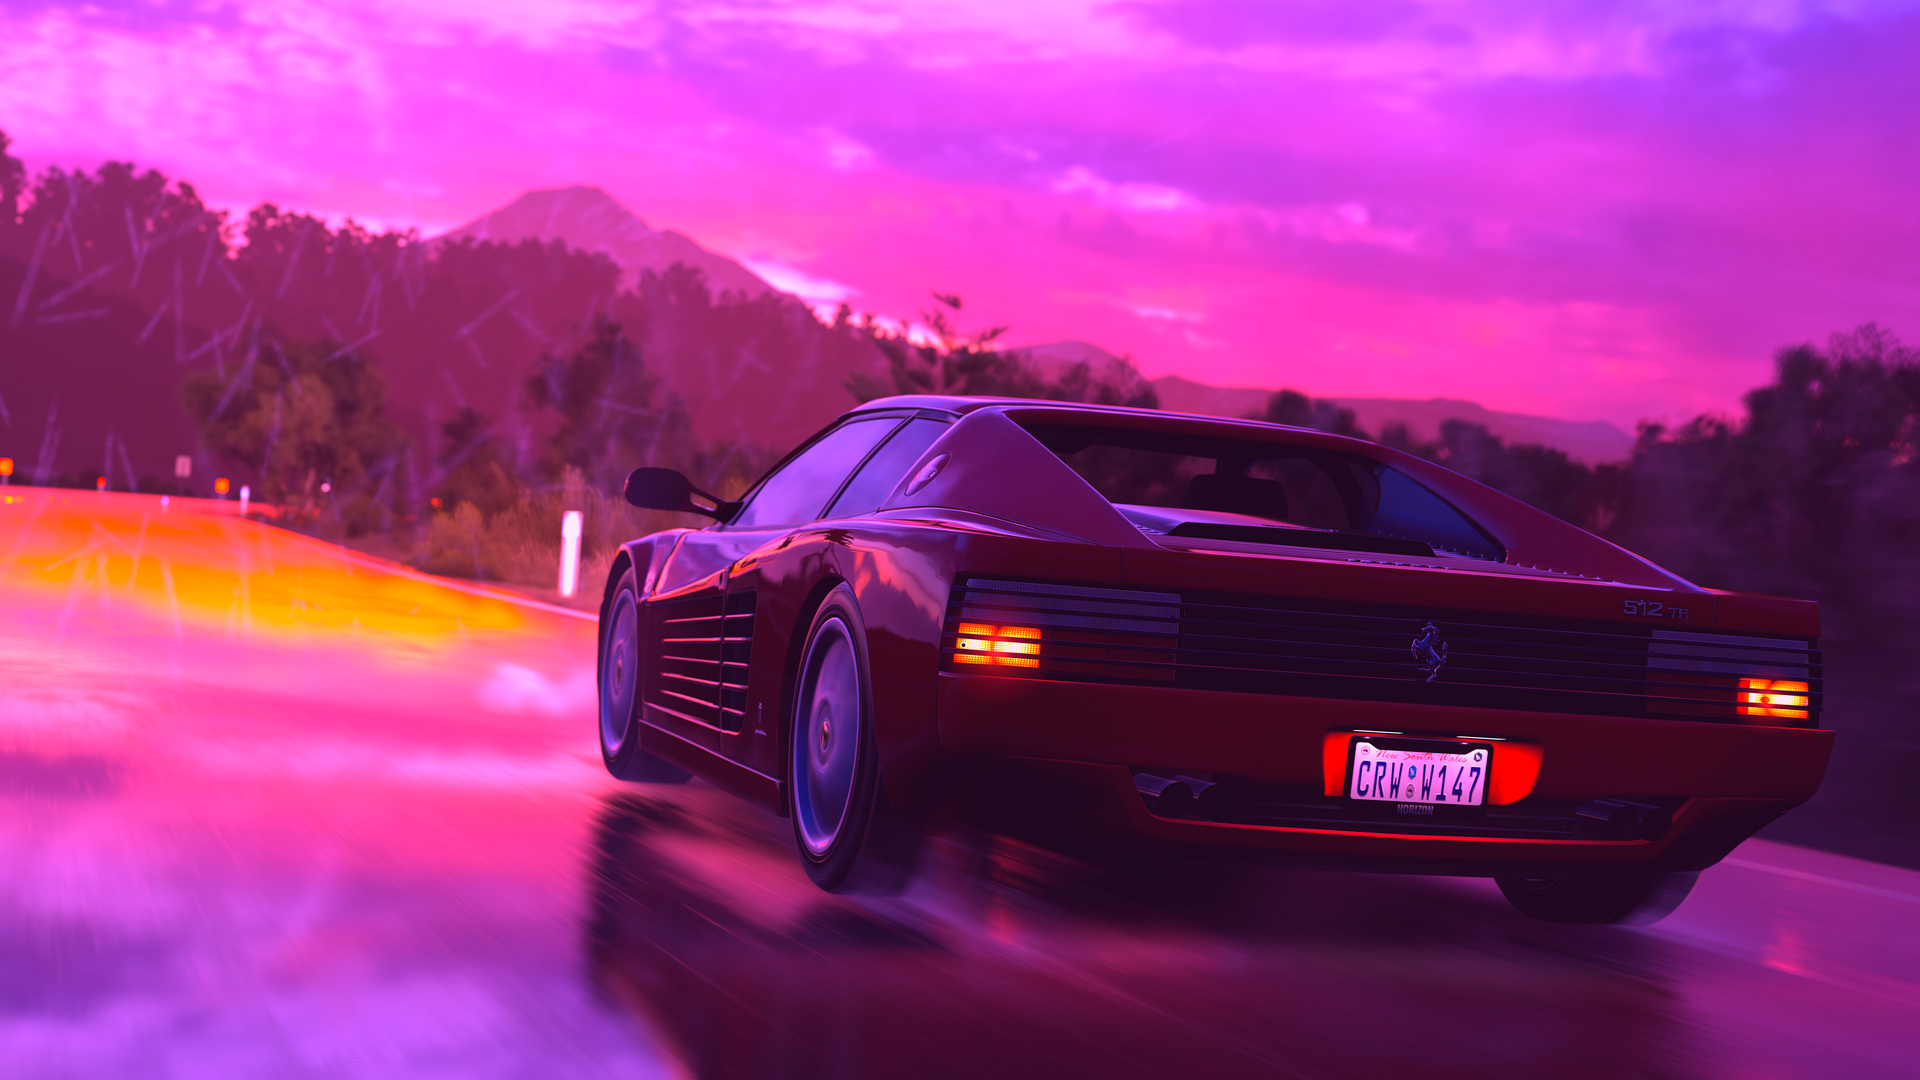 1920x1080 Ferrari Sports Car Retrowave Art 4k Laptop Full Hd 1080p